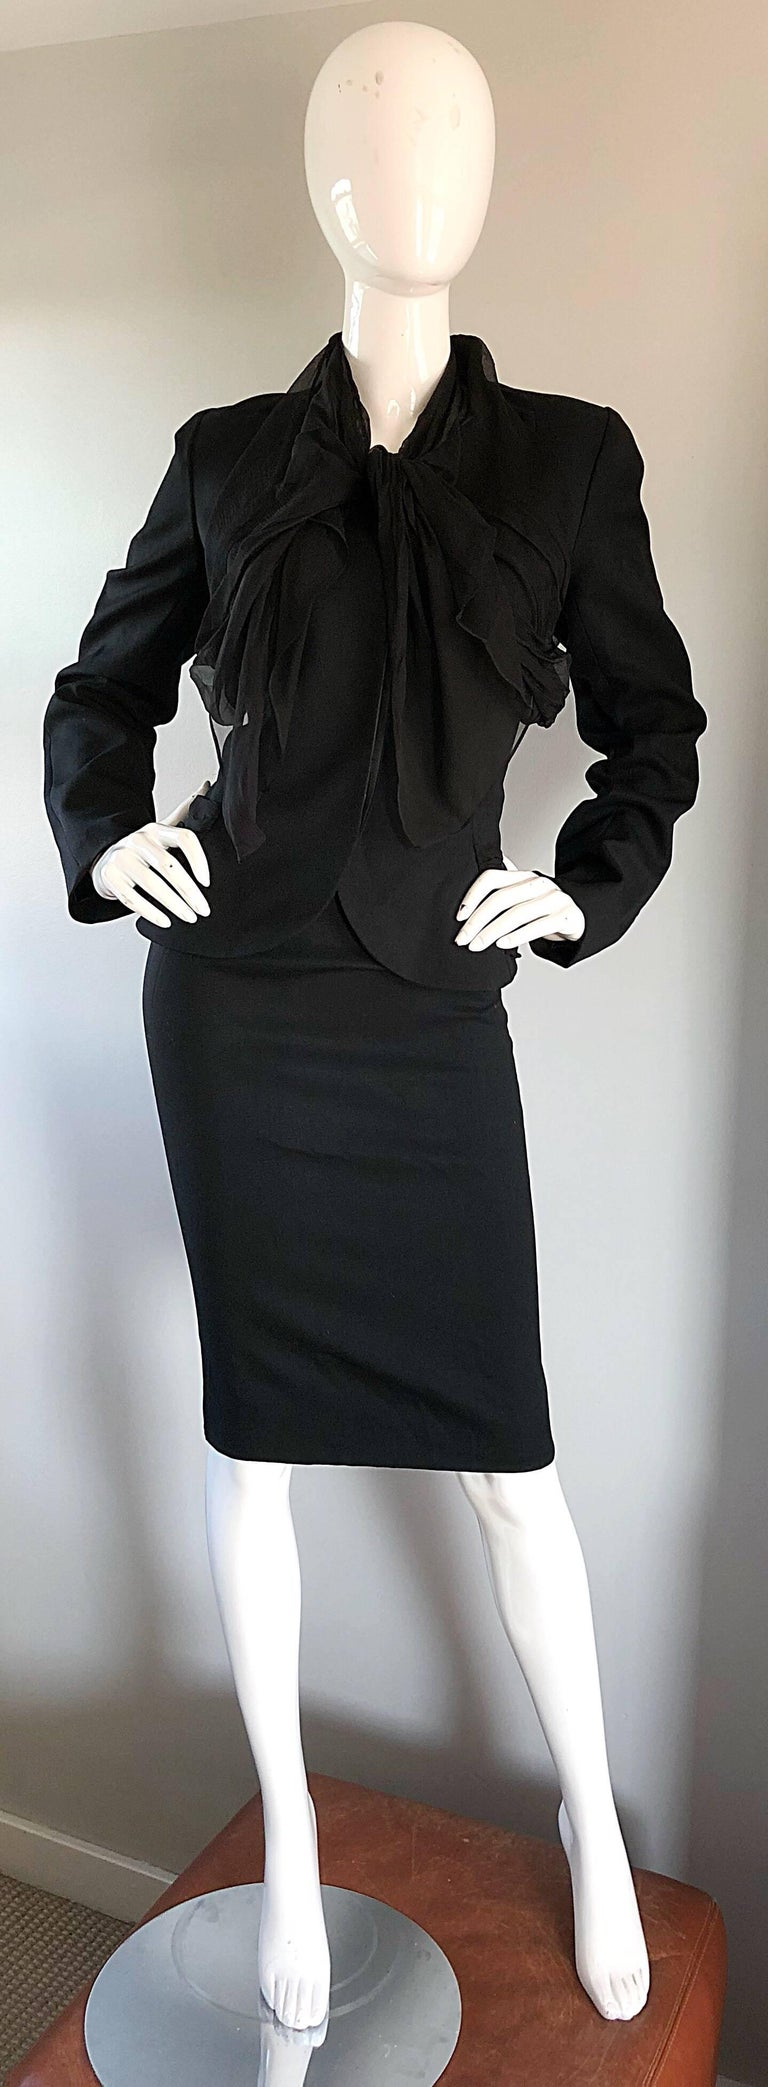 John Galliano Early 2000s Black Size 8 / 10 1940s Style Jacket Skirt Suit For Sale 5